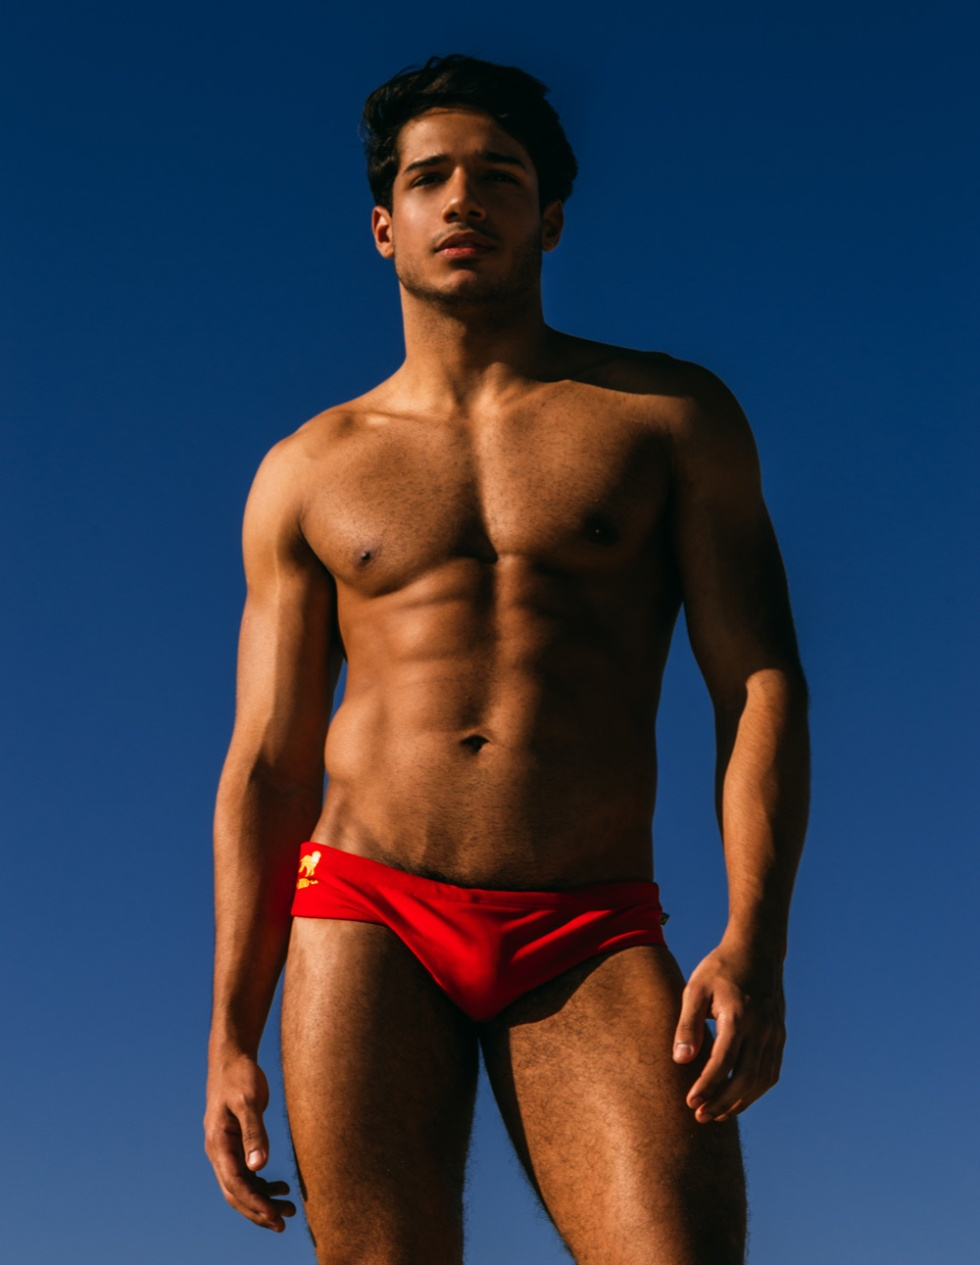 Introducing Brazilian new comer with fit body Igor Costa snapped by Beto Urbina.